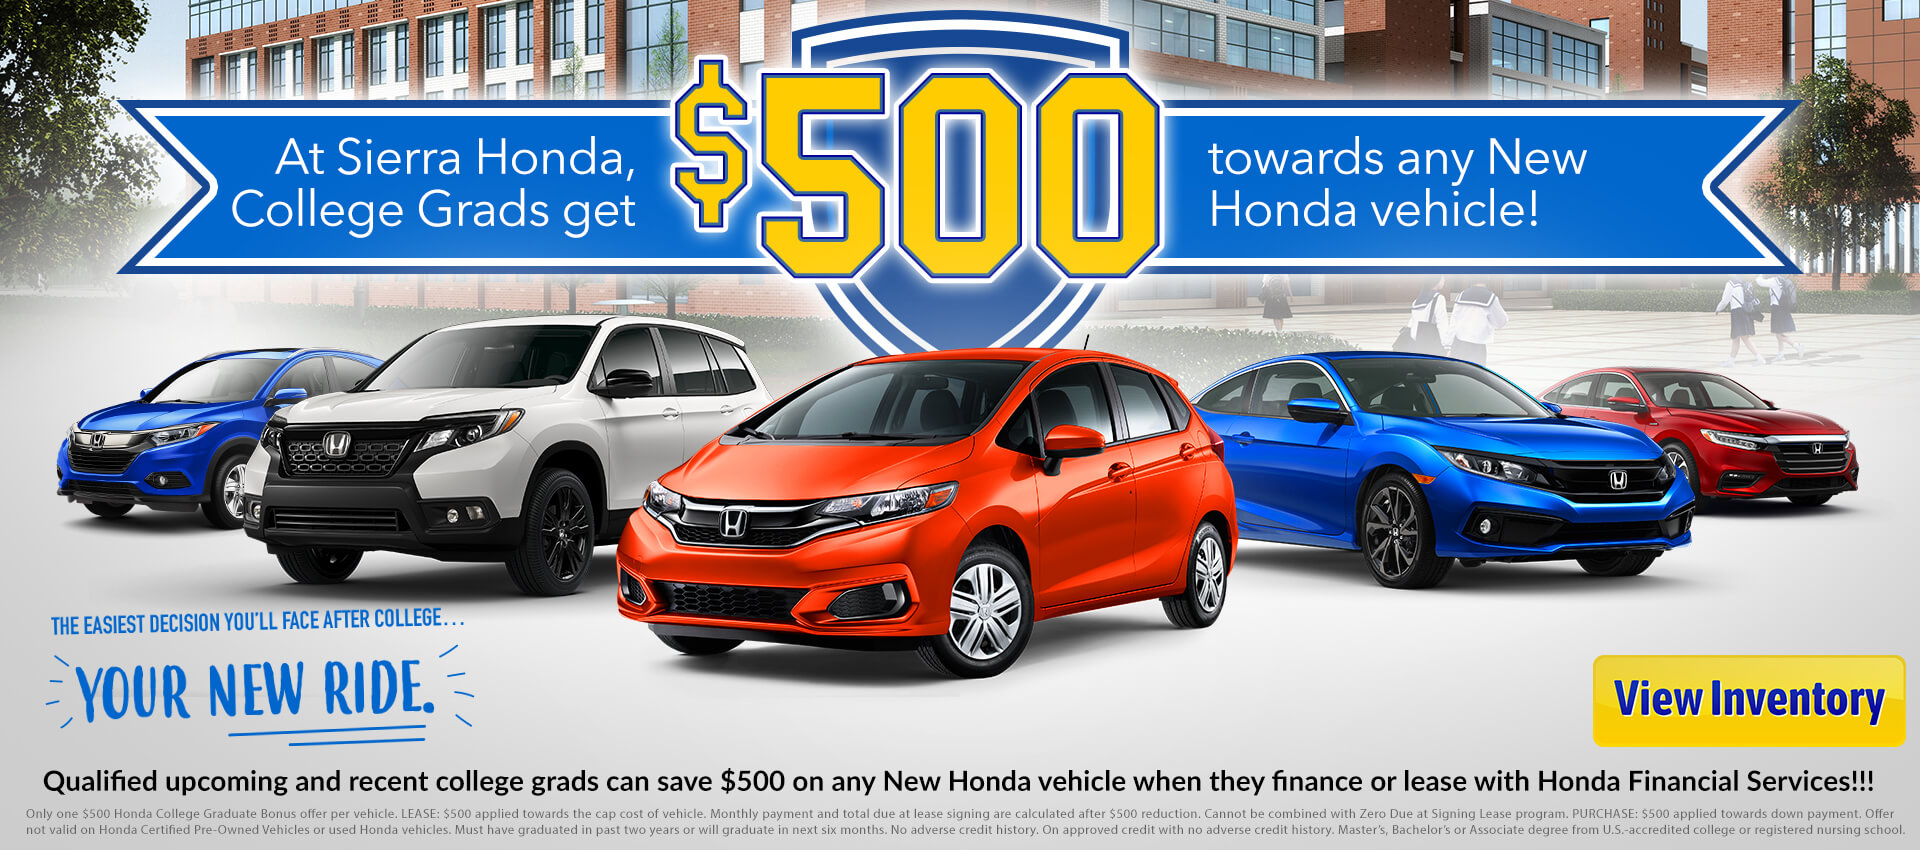 At Sierra Honda, Colelge Grads get $500 towards any 2019 Vehicle!